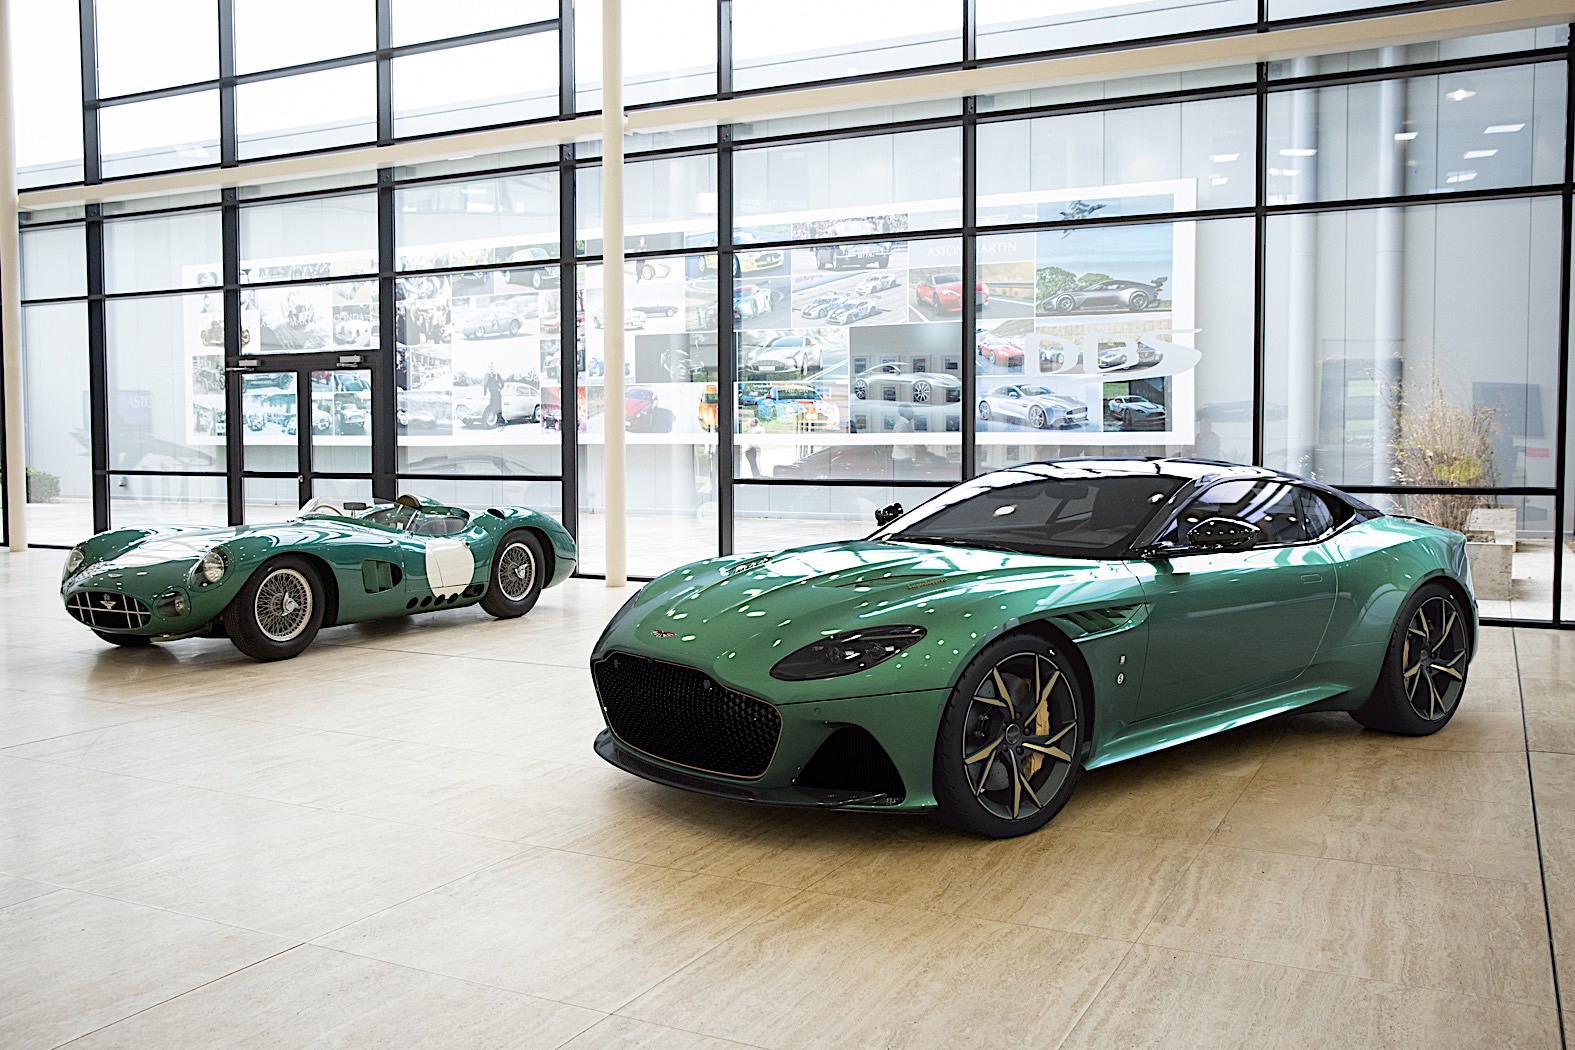 Aston Martin DBS Superleggera Turned into DBR1 Le Mans Win Tribute